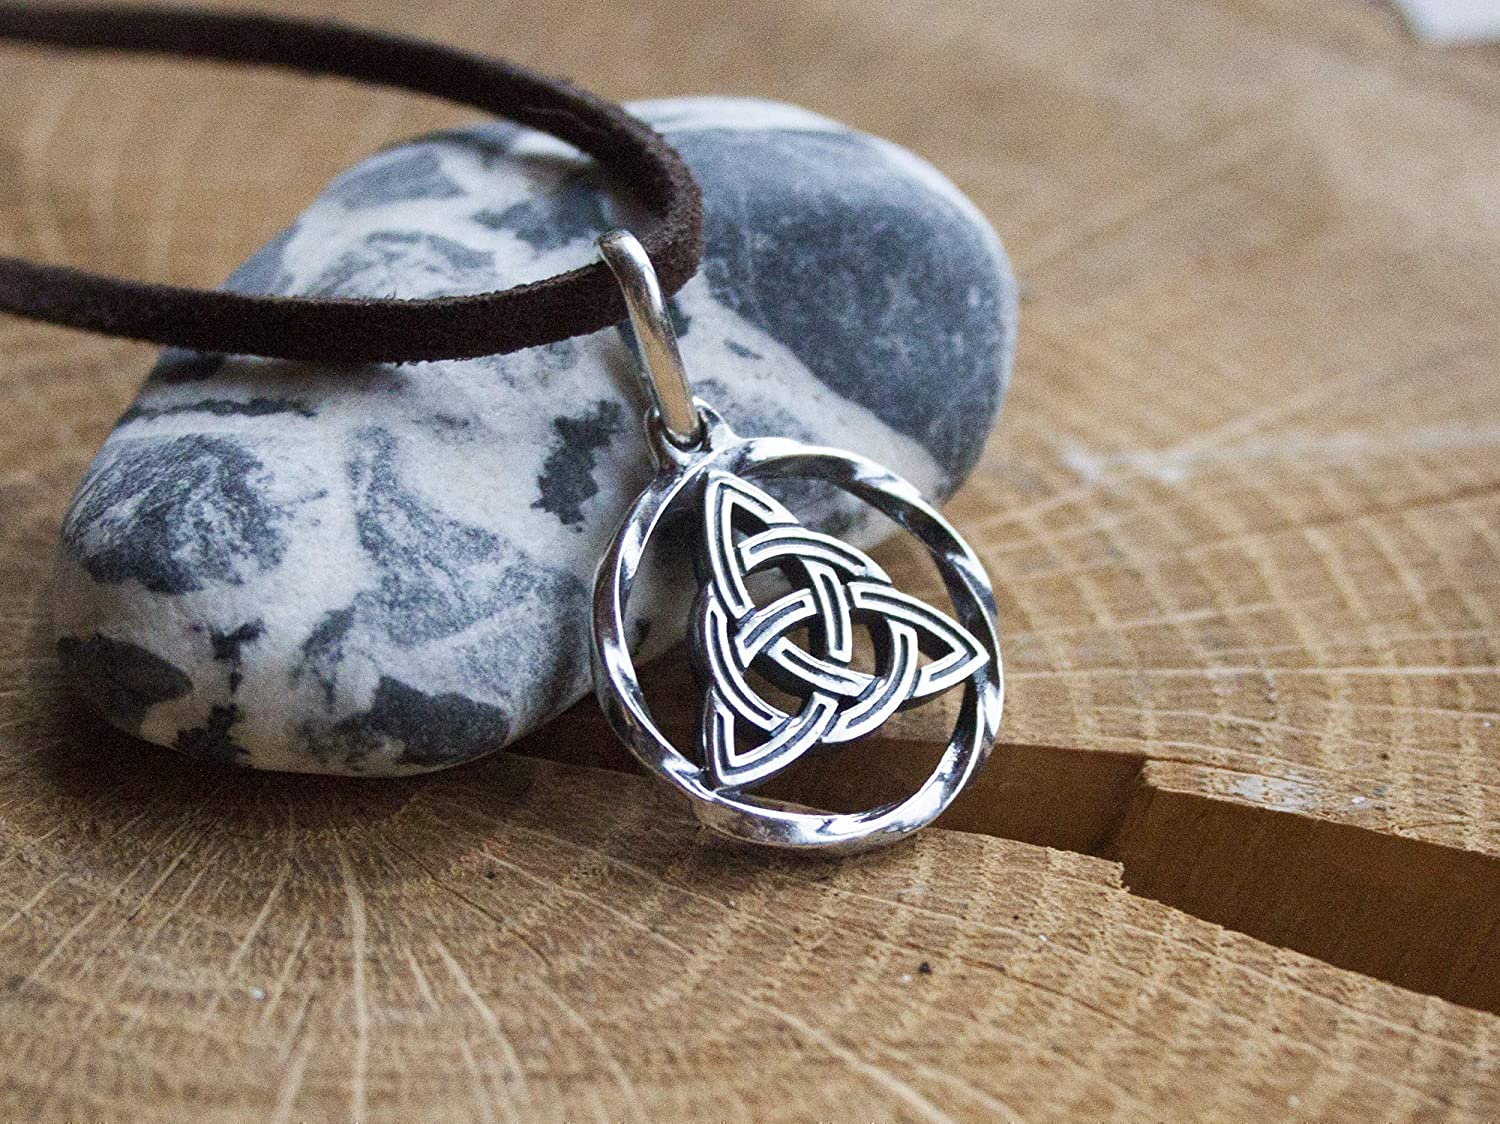 Hand embossed Celtic knot trinity knot pendant aluminum metal jewelry statement necklace embossing unique gift Triquetra Ireland meaningful